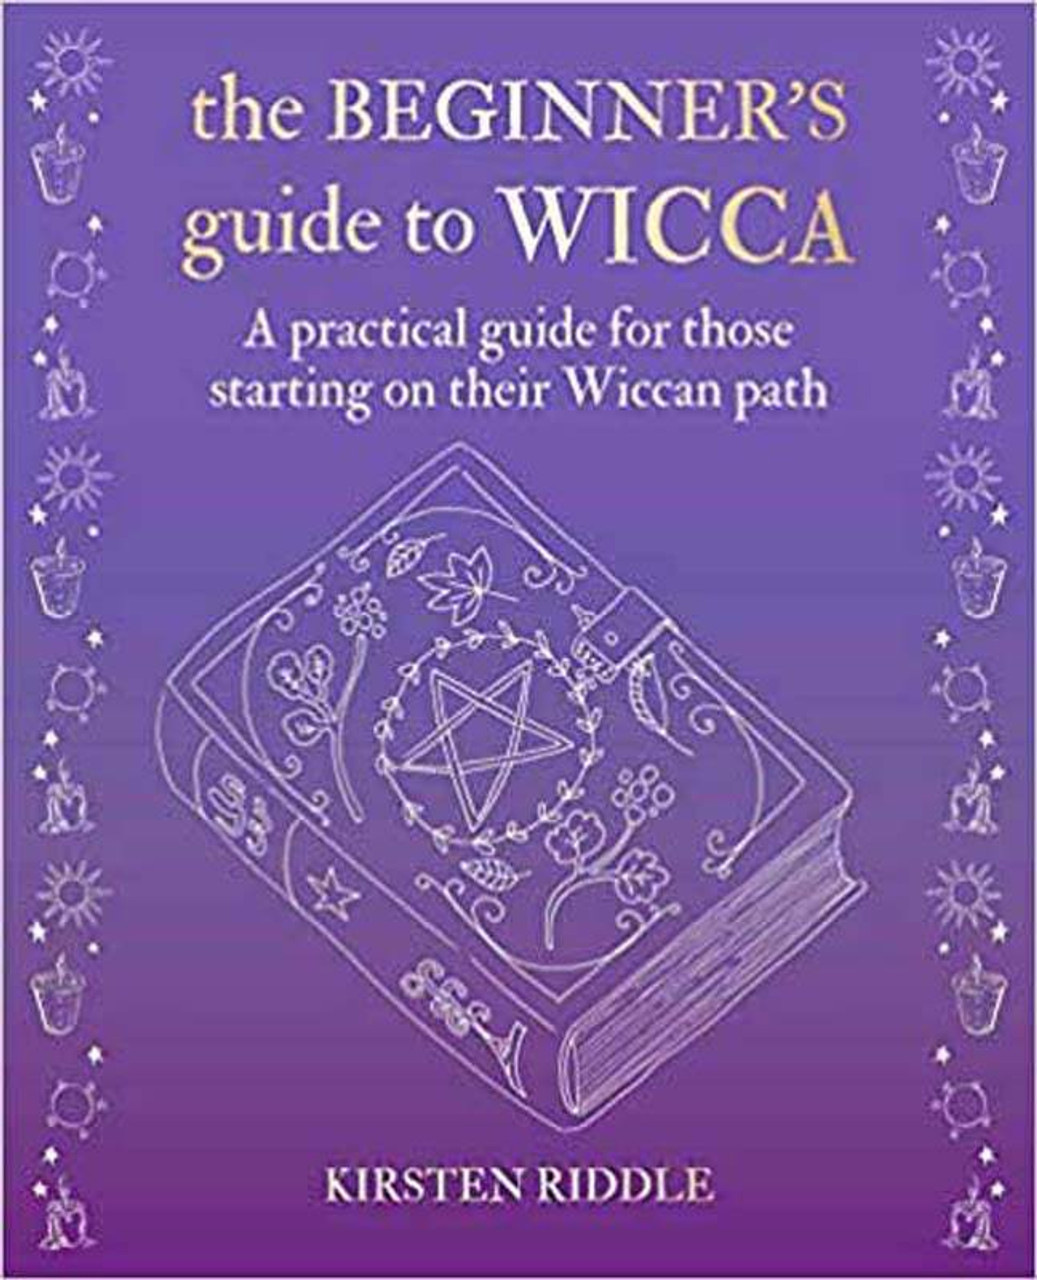 Beginner's Guide to Wicca(hc) by Kirsten Riddle